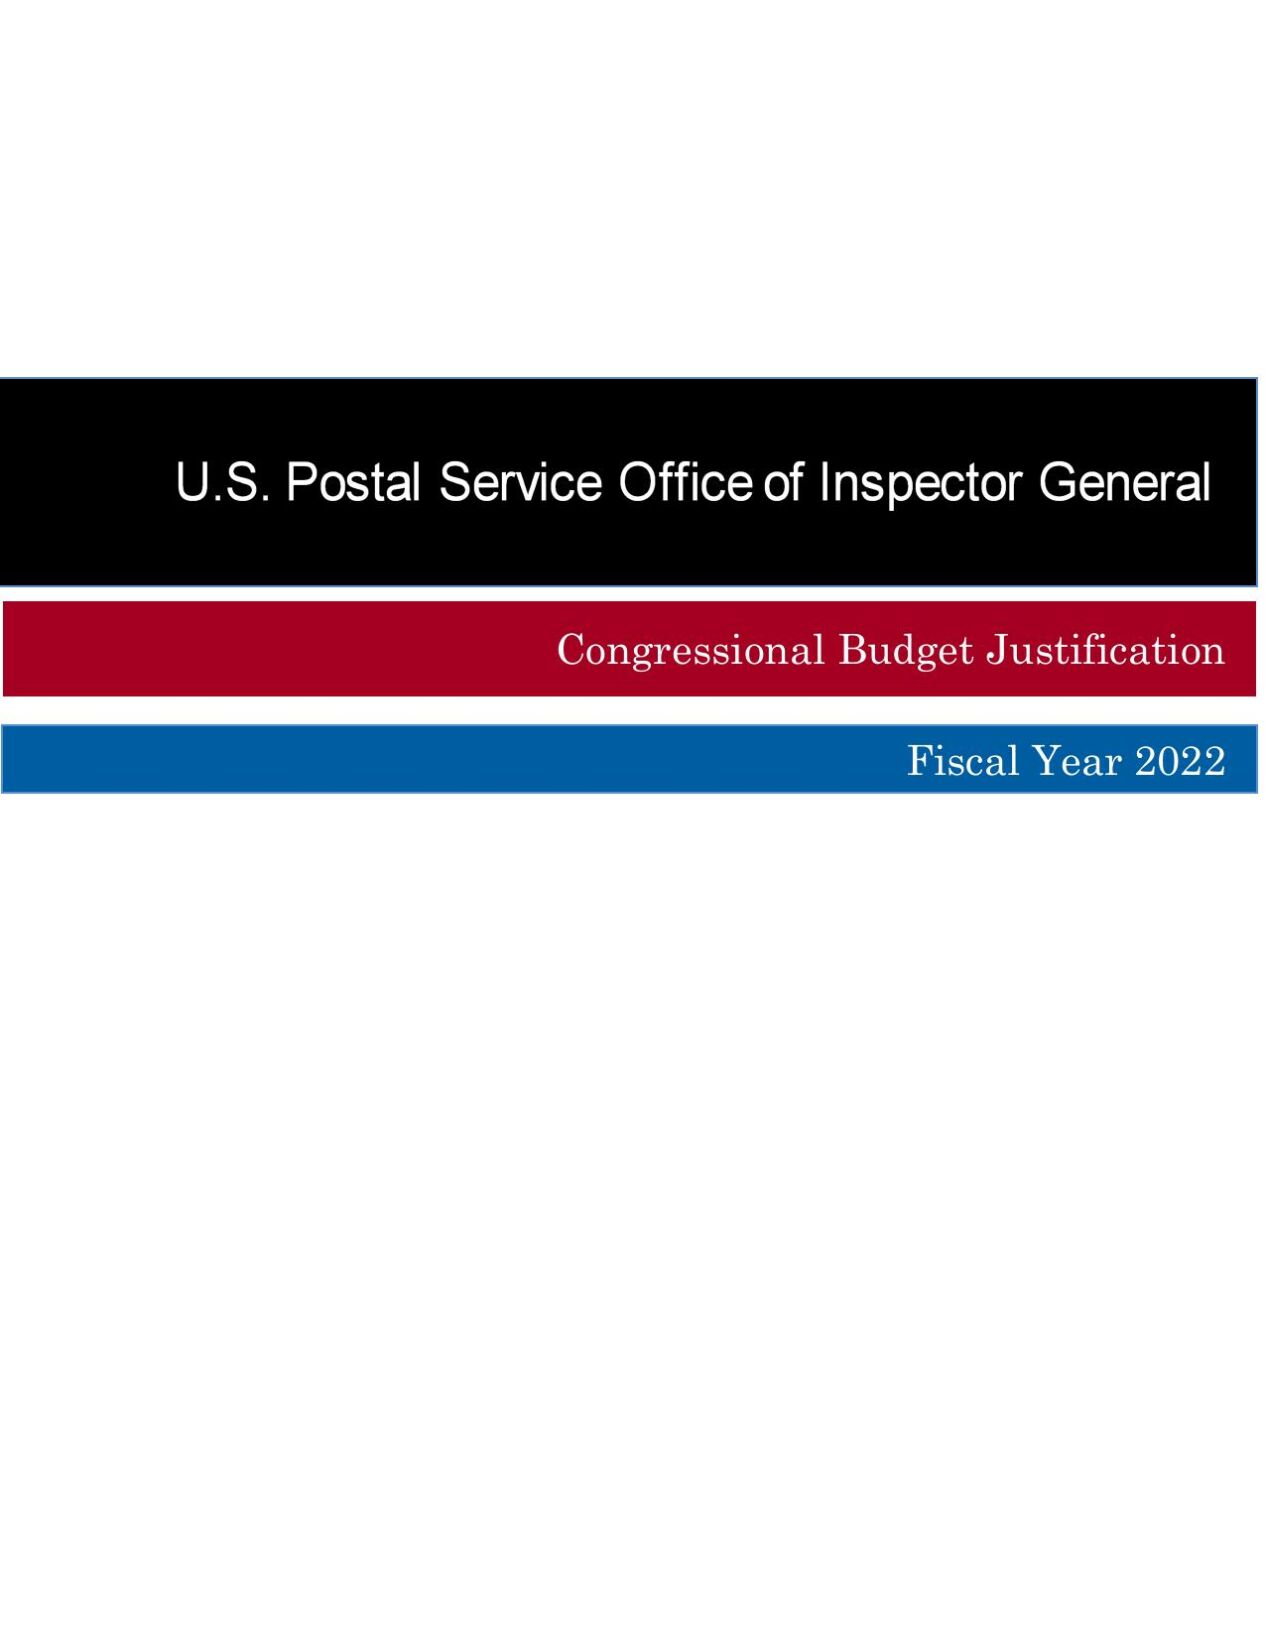 USPS FY22 Budget Request